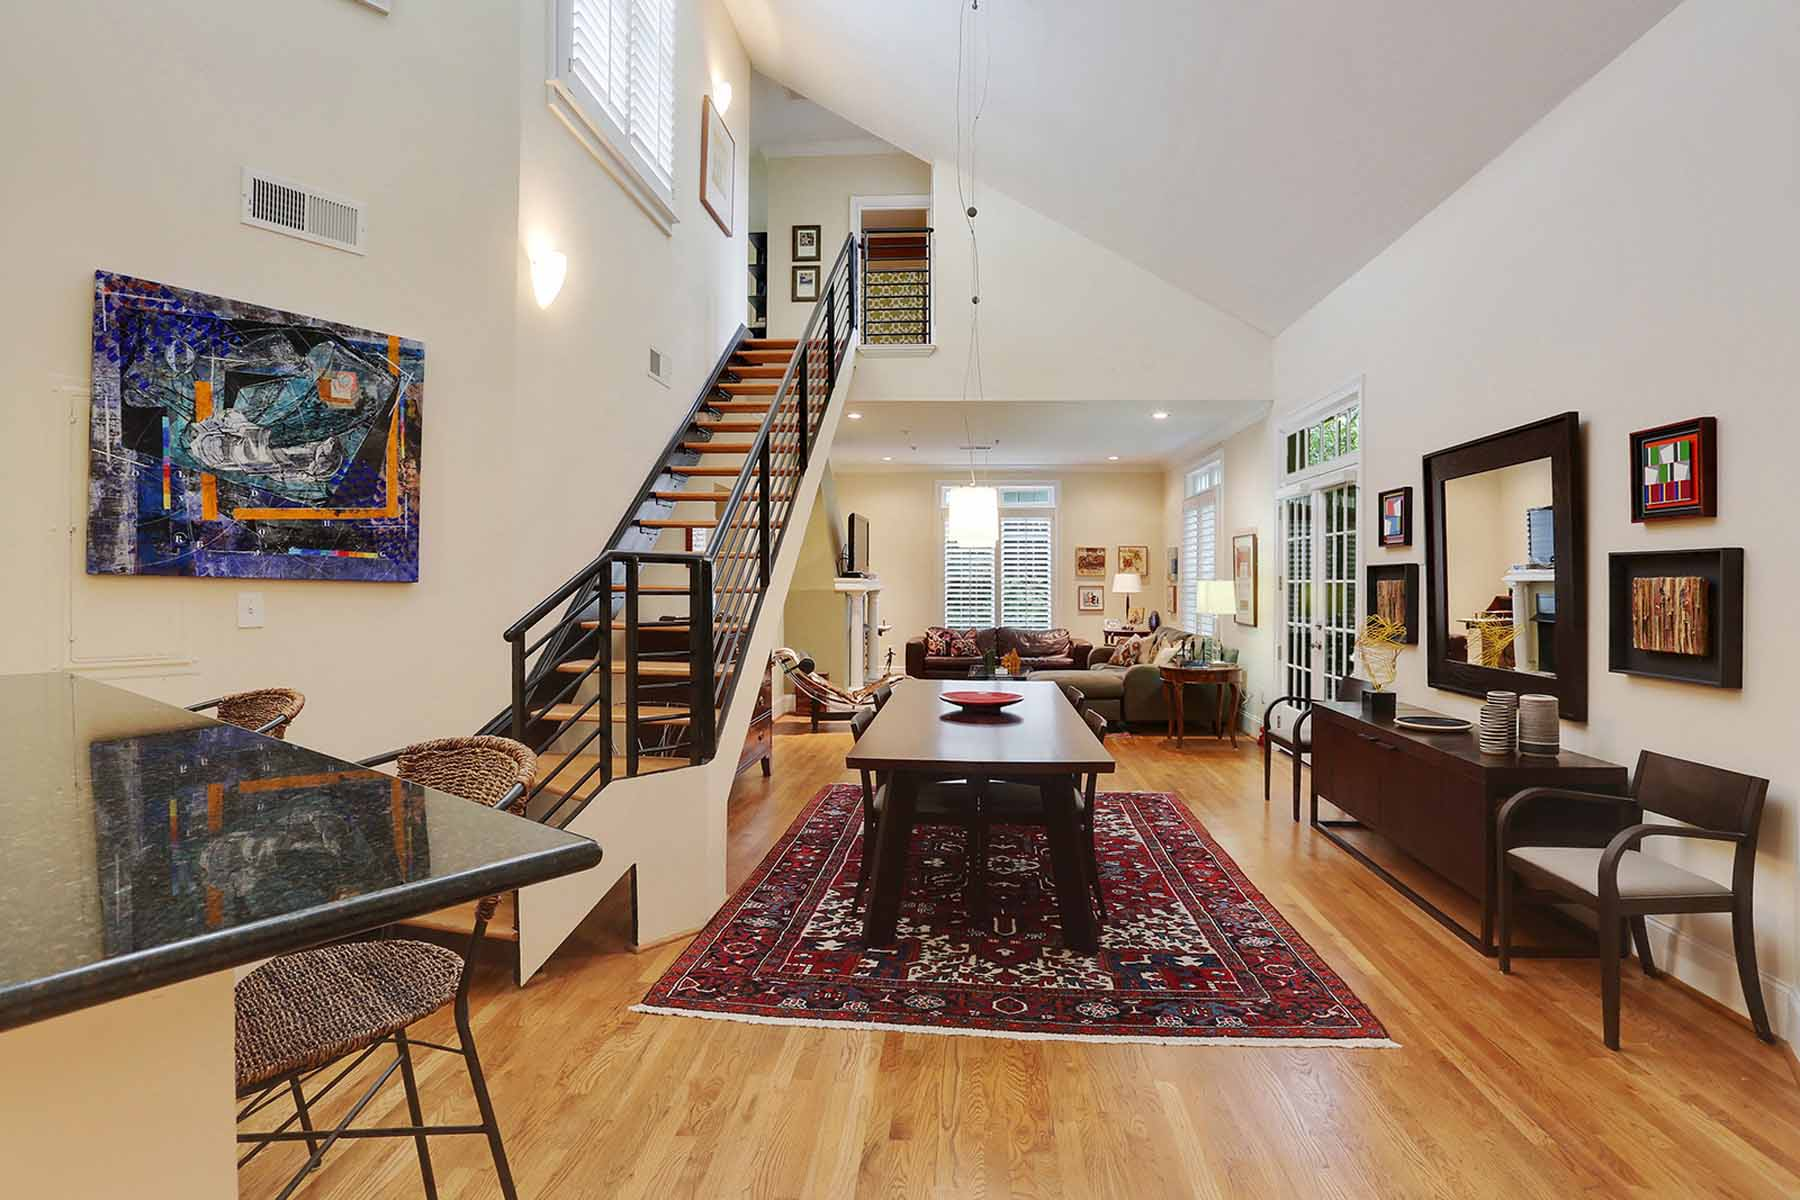 Property For Sale at Absolutely gorgeous two-story loft in the historic DAR building in Ansley Park!